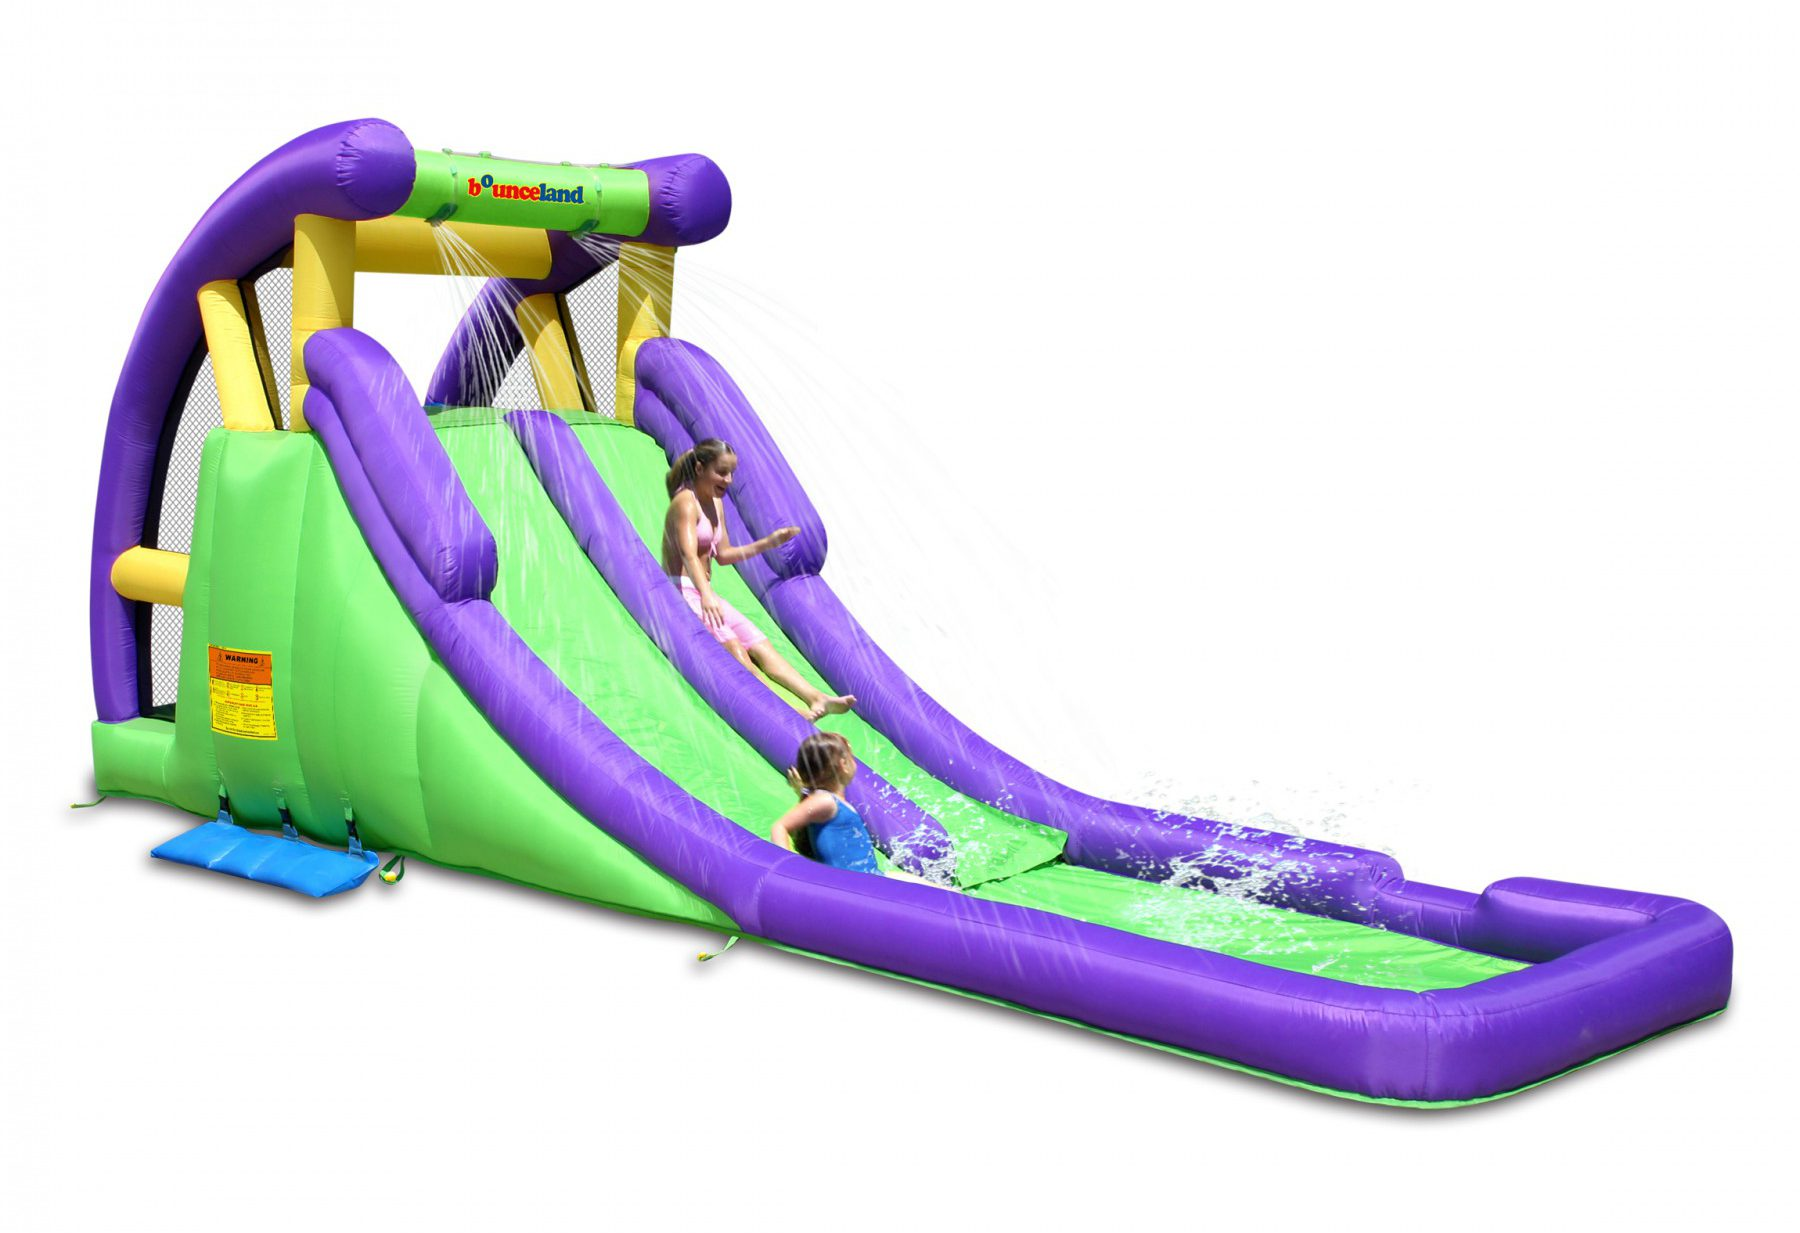 9029A bounceland double water slide with pool